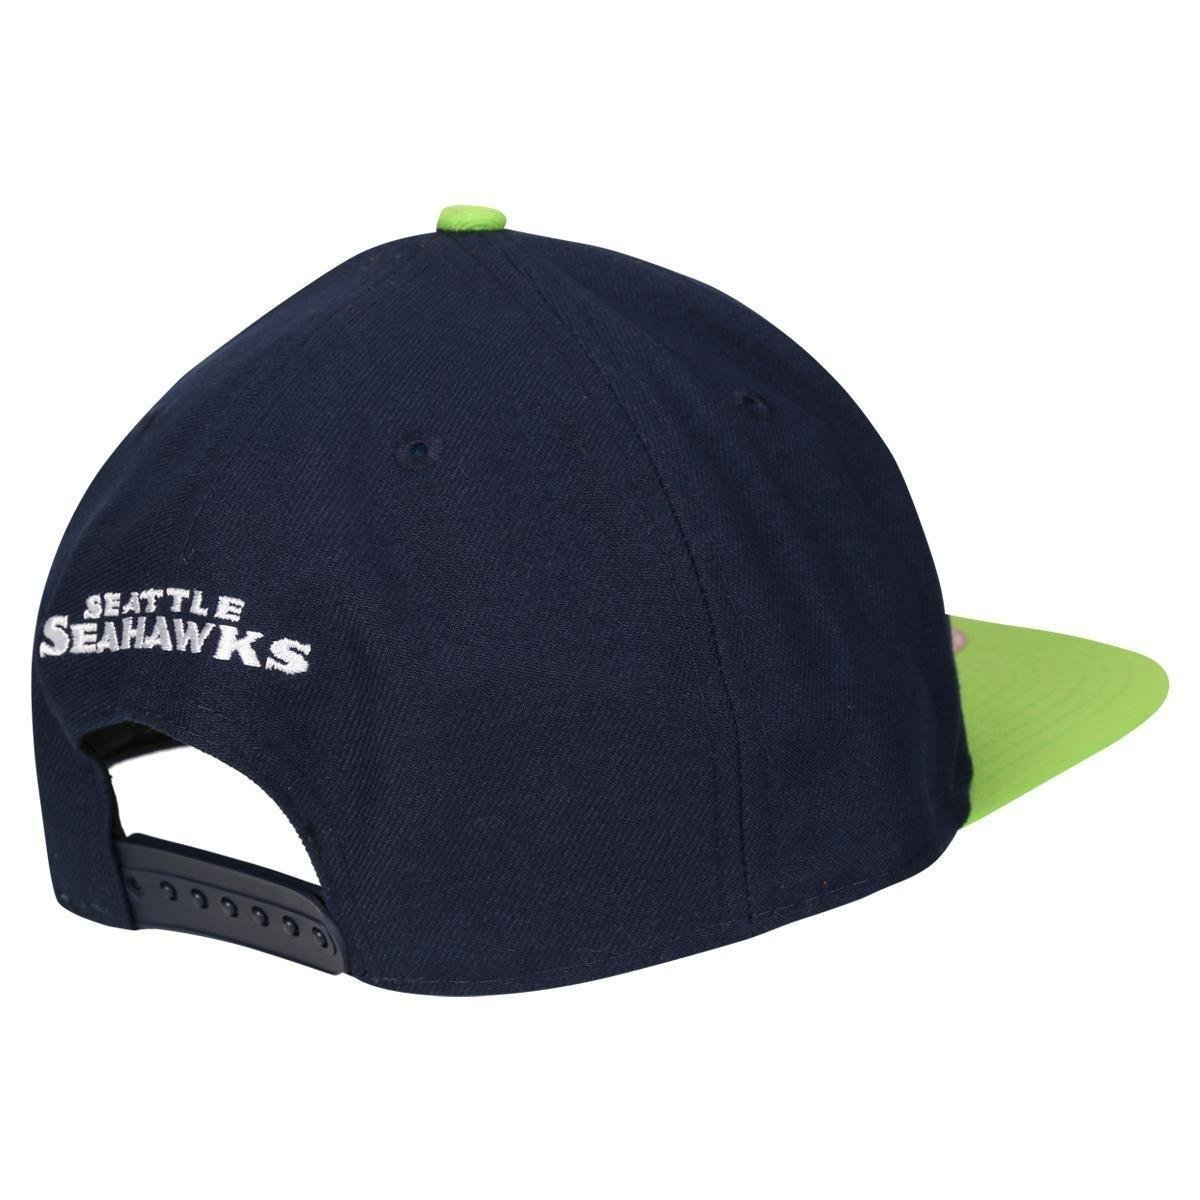 Boné New Era 950 NFL Of Sn Classic Team Seattle Seahawks - Compre ... 6fa82aeef5e